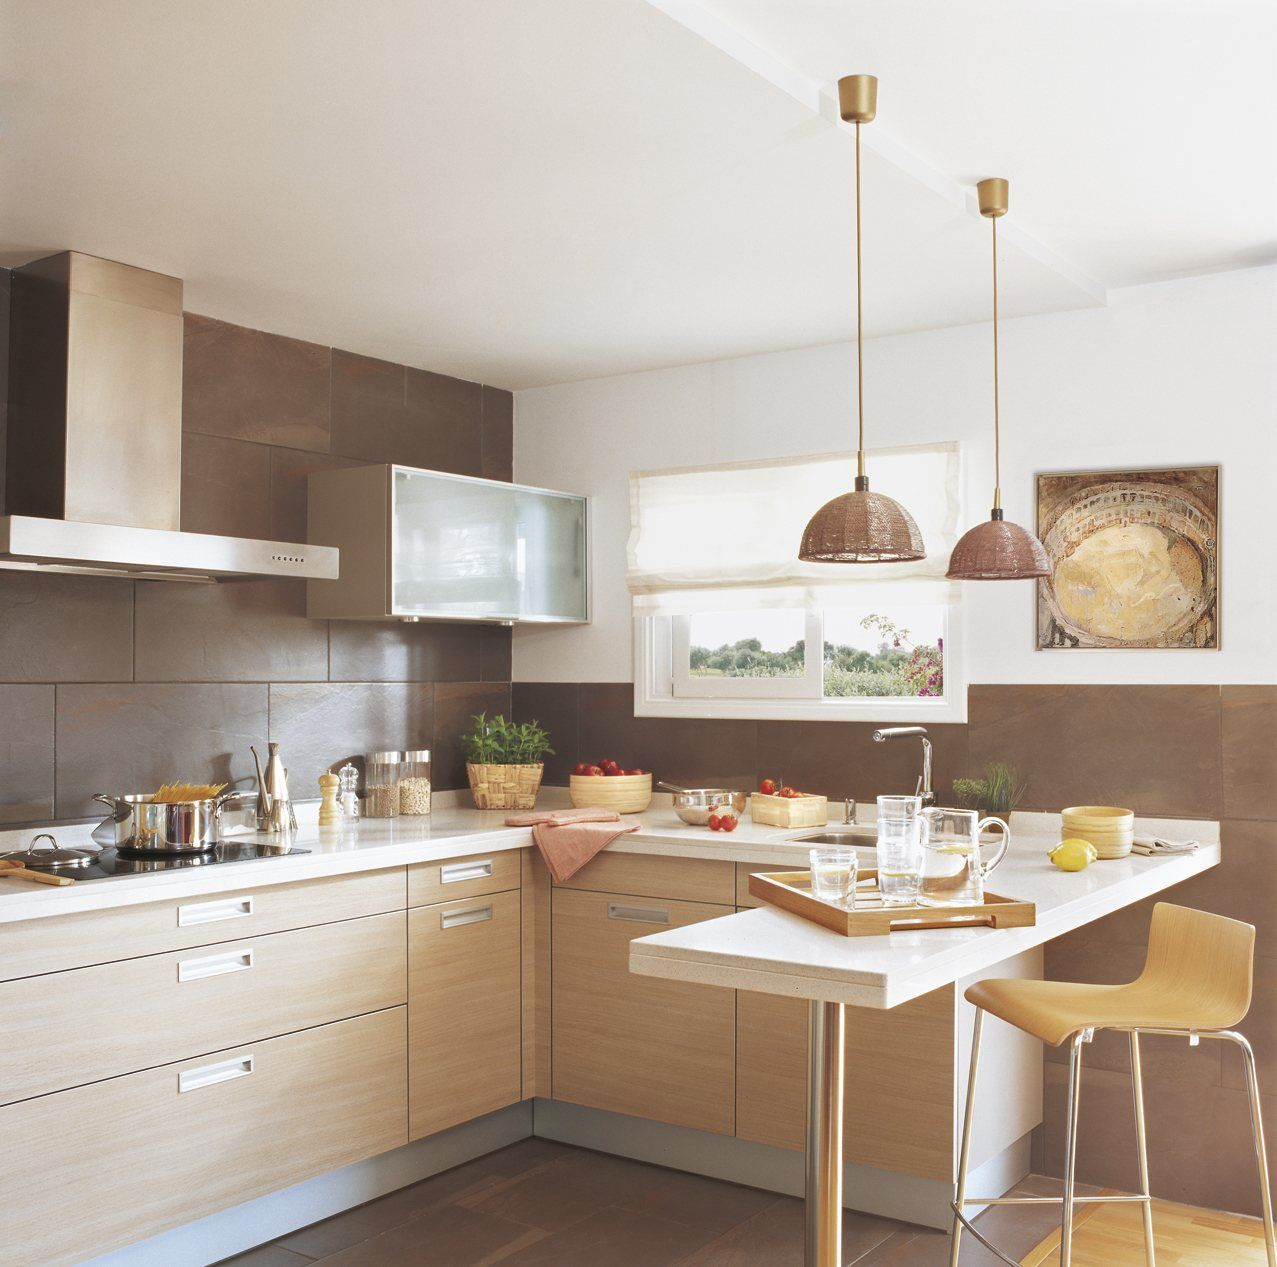 15 cocinas peque as y muy bonitas kitchens ideas para for Soluciones para cocinas pequenas